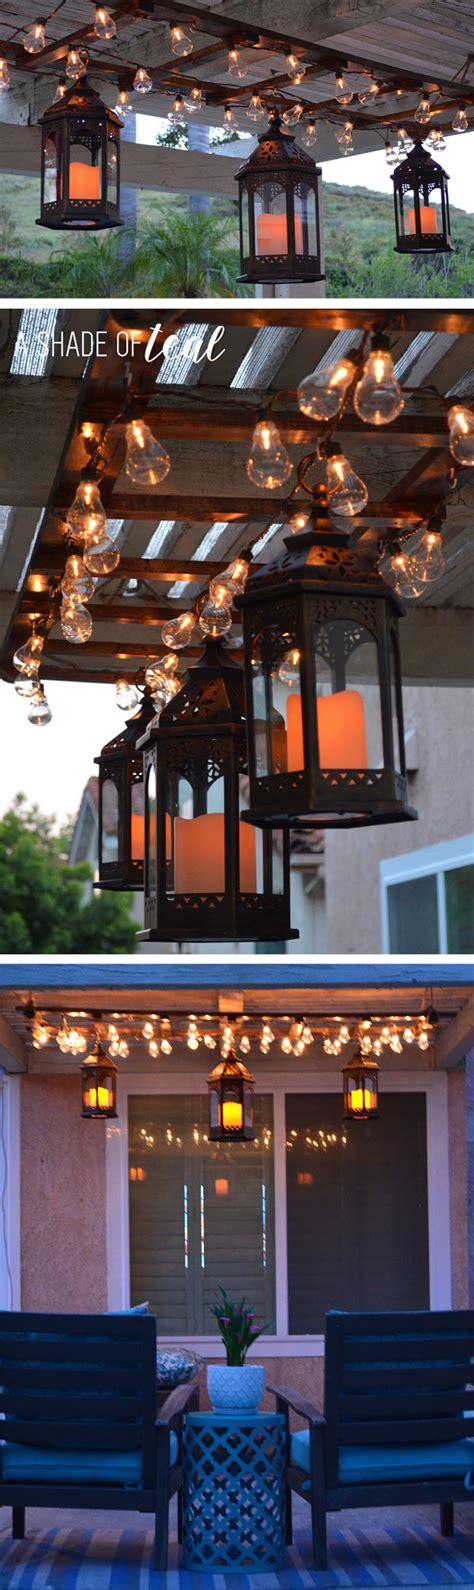 Big Lots Outdoor Lights Diy Ladder Light Centerpiece Outdoor Makeover With Big Lots A Shade Of Teal